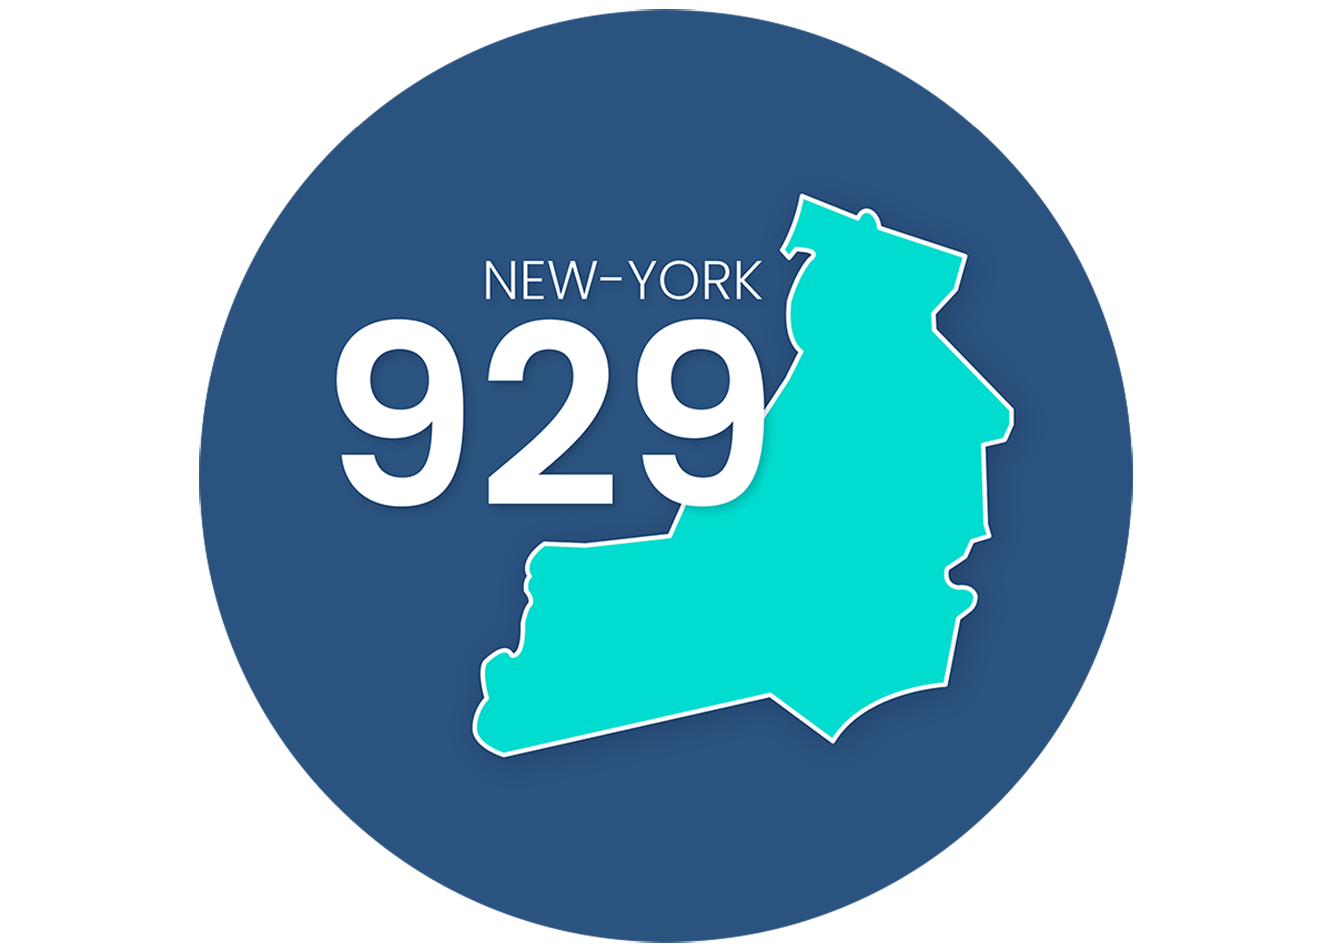 Get a 929 area code phone number in New York